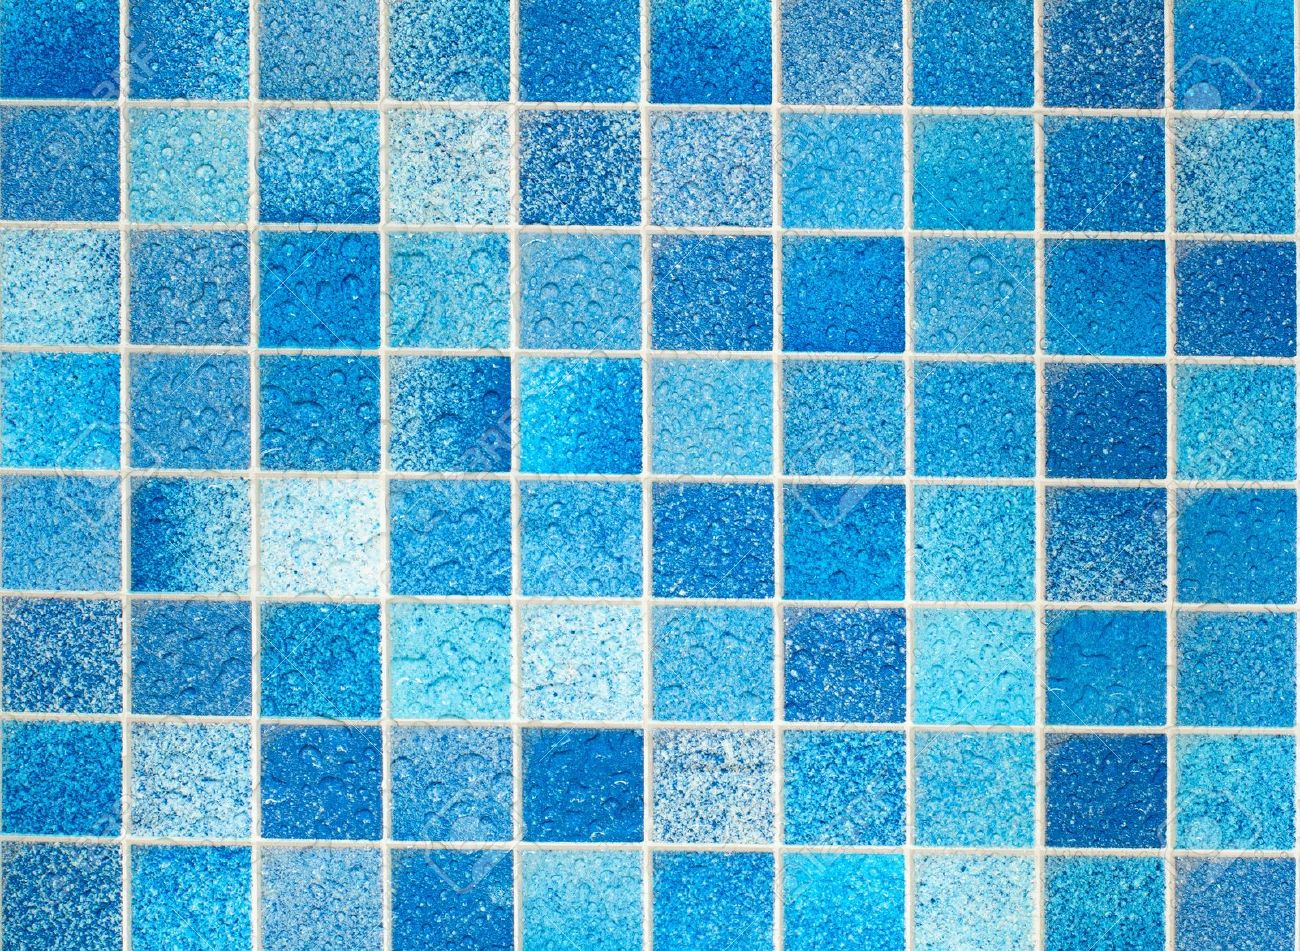 blue tiles. Blue Tiles In Bathroom With Water Drops Stock Photo - 10272495 Y